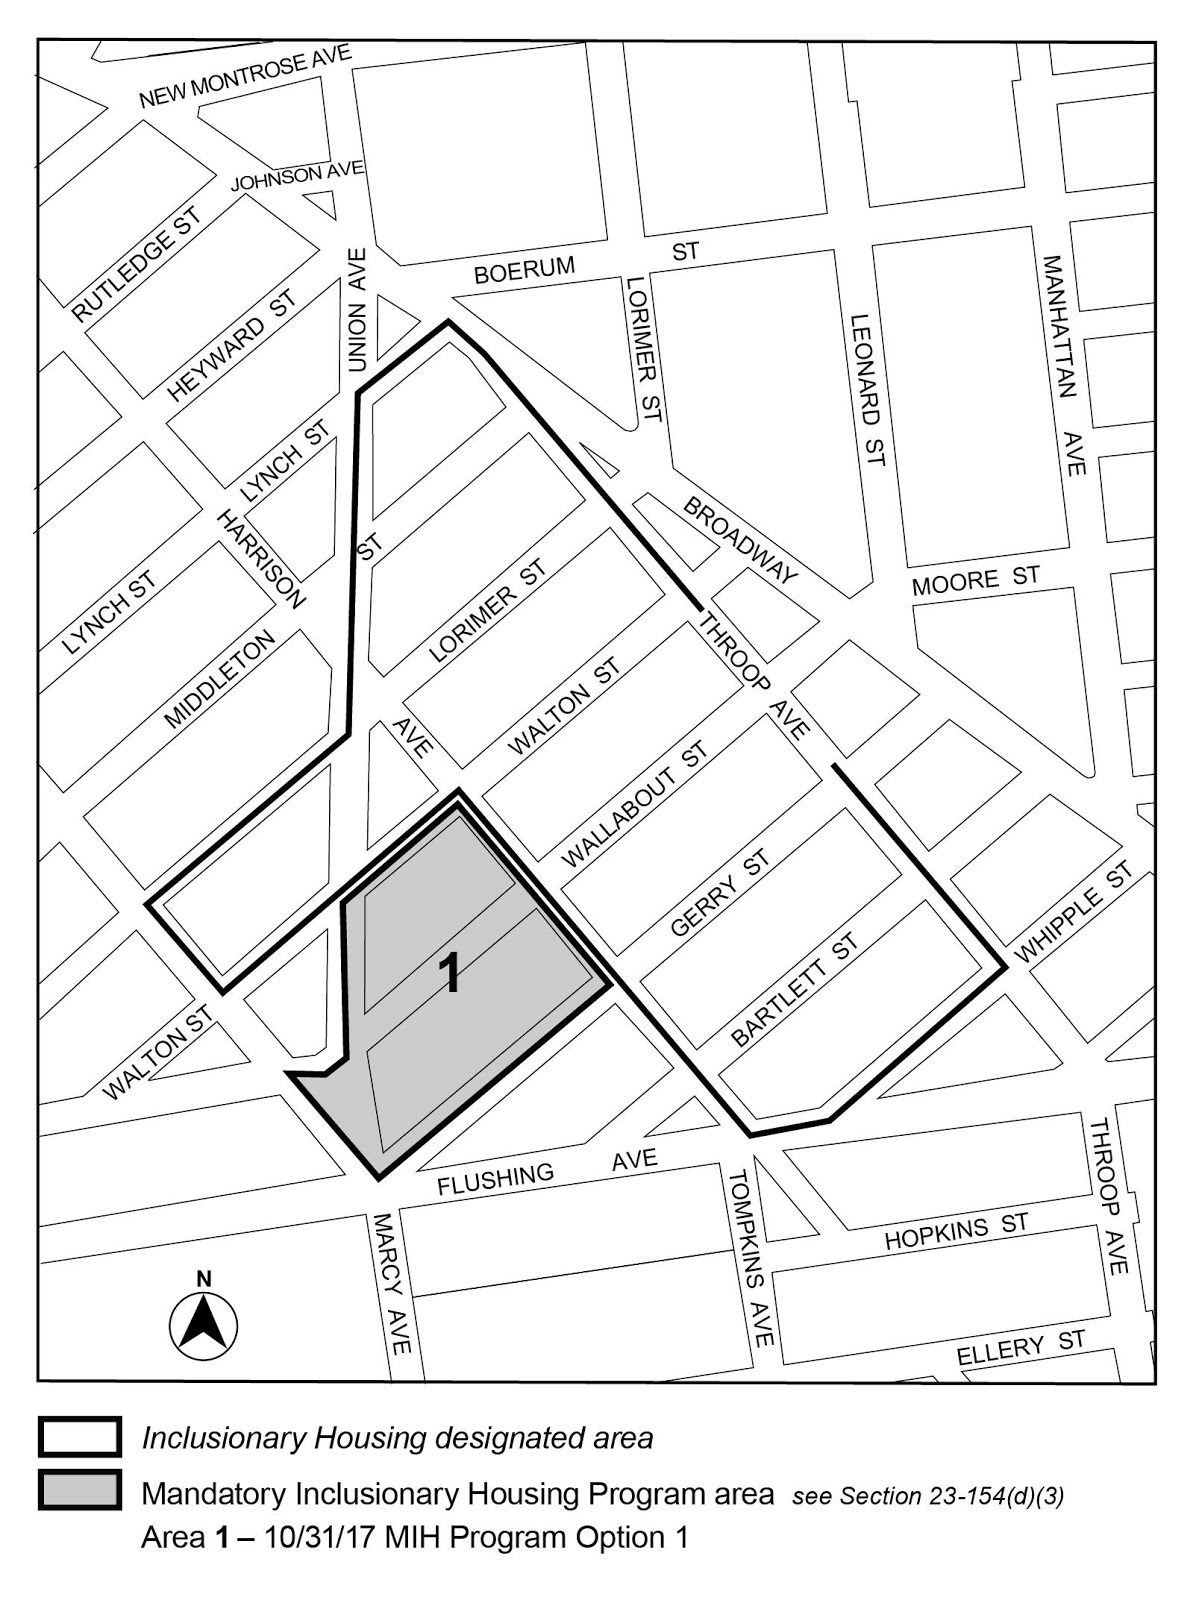 Zoning Resolutions F-Inclusionary Housing Designated Areas and Mandatory Inclusionary Housing Areas_2.39